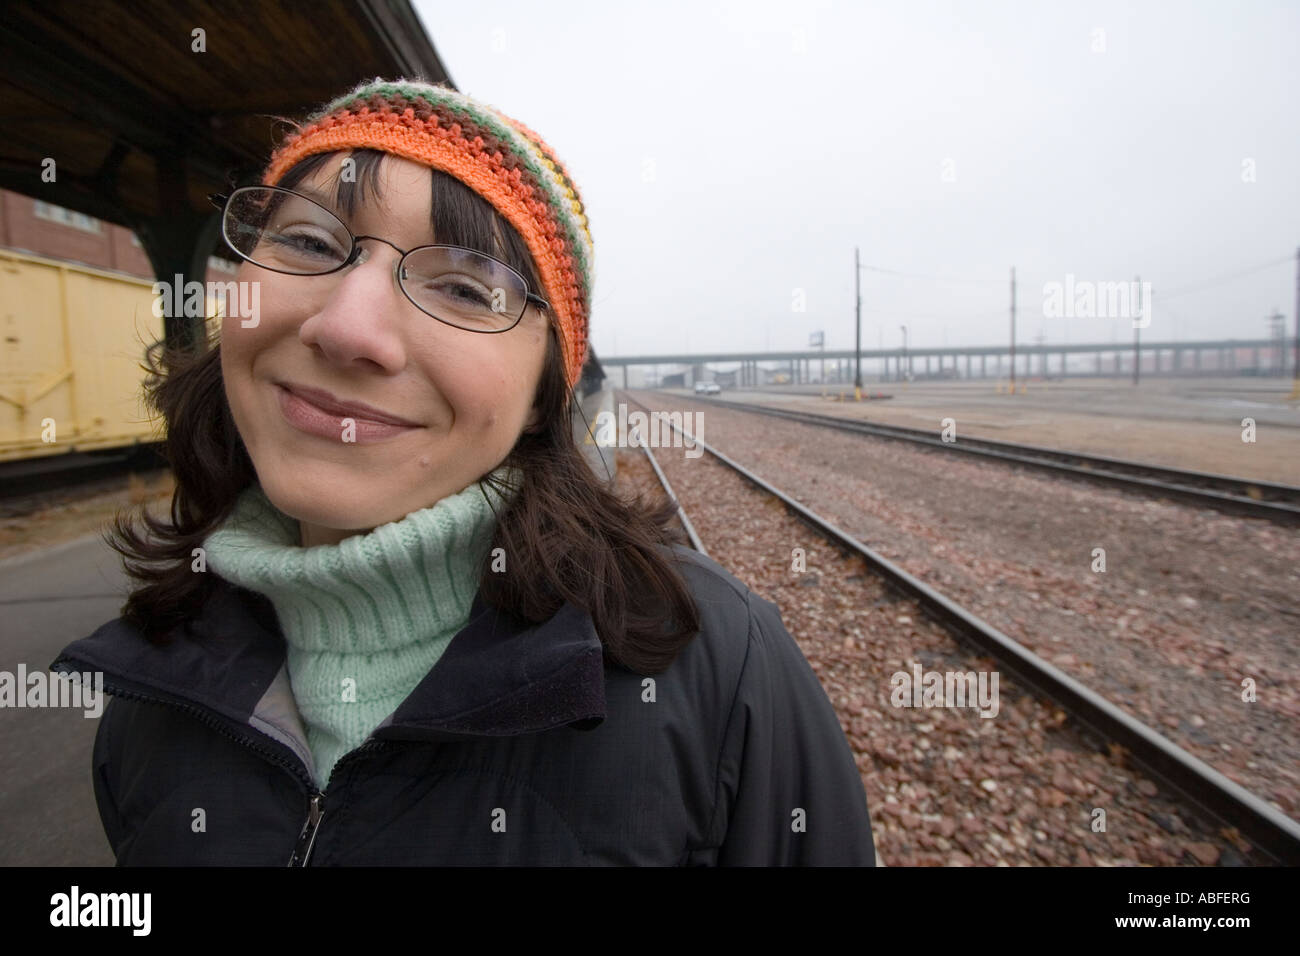 A woman standing at a railyard during the winter in Lincoln, Nebraska. - Stock Image